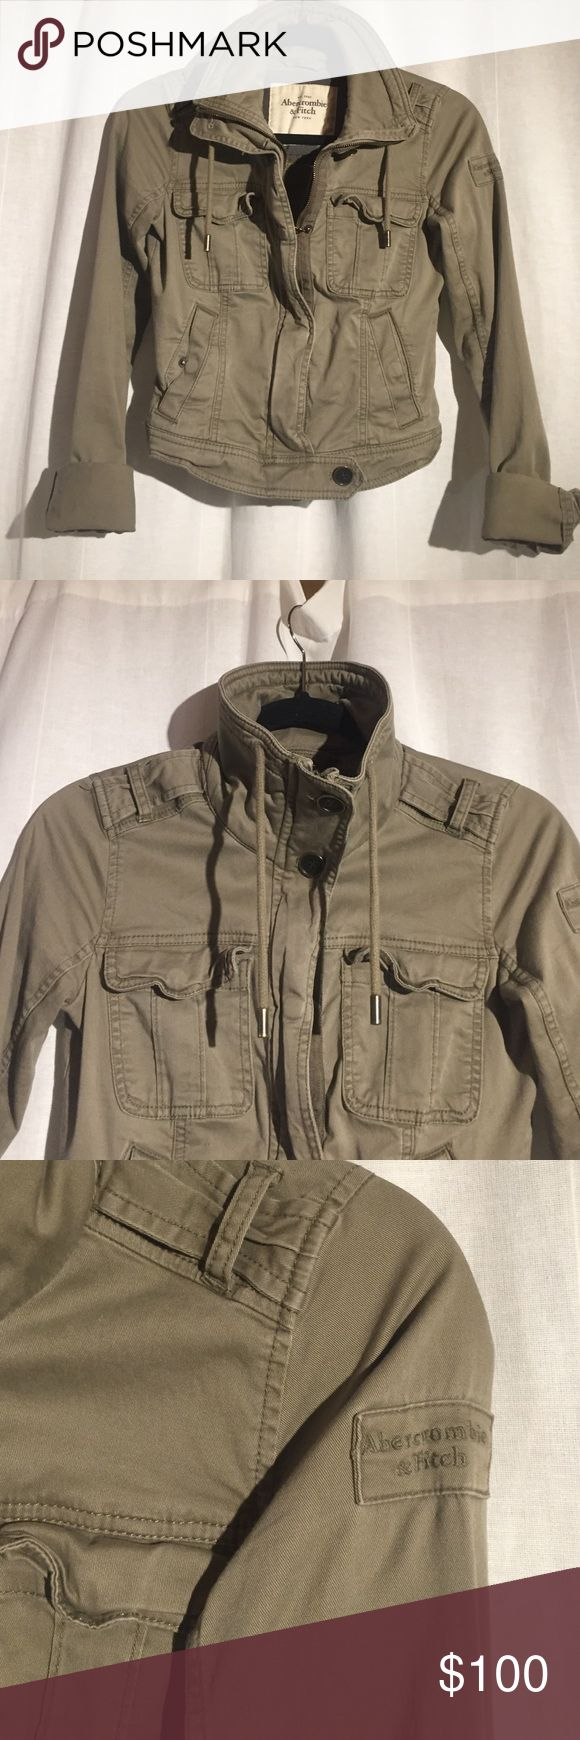 Olive green Abercrombie and Fitch coat. Abercrombie and Fitch military style coat in olive green. FEEL FREE TO MAKE AN OFFER❤️ Abercrombie & Fitch Jackets & Coats